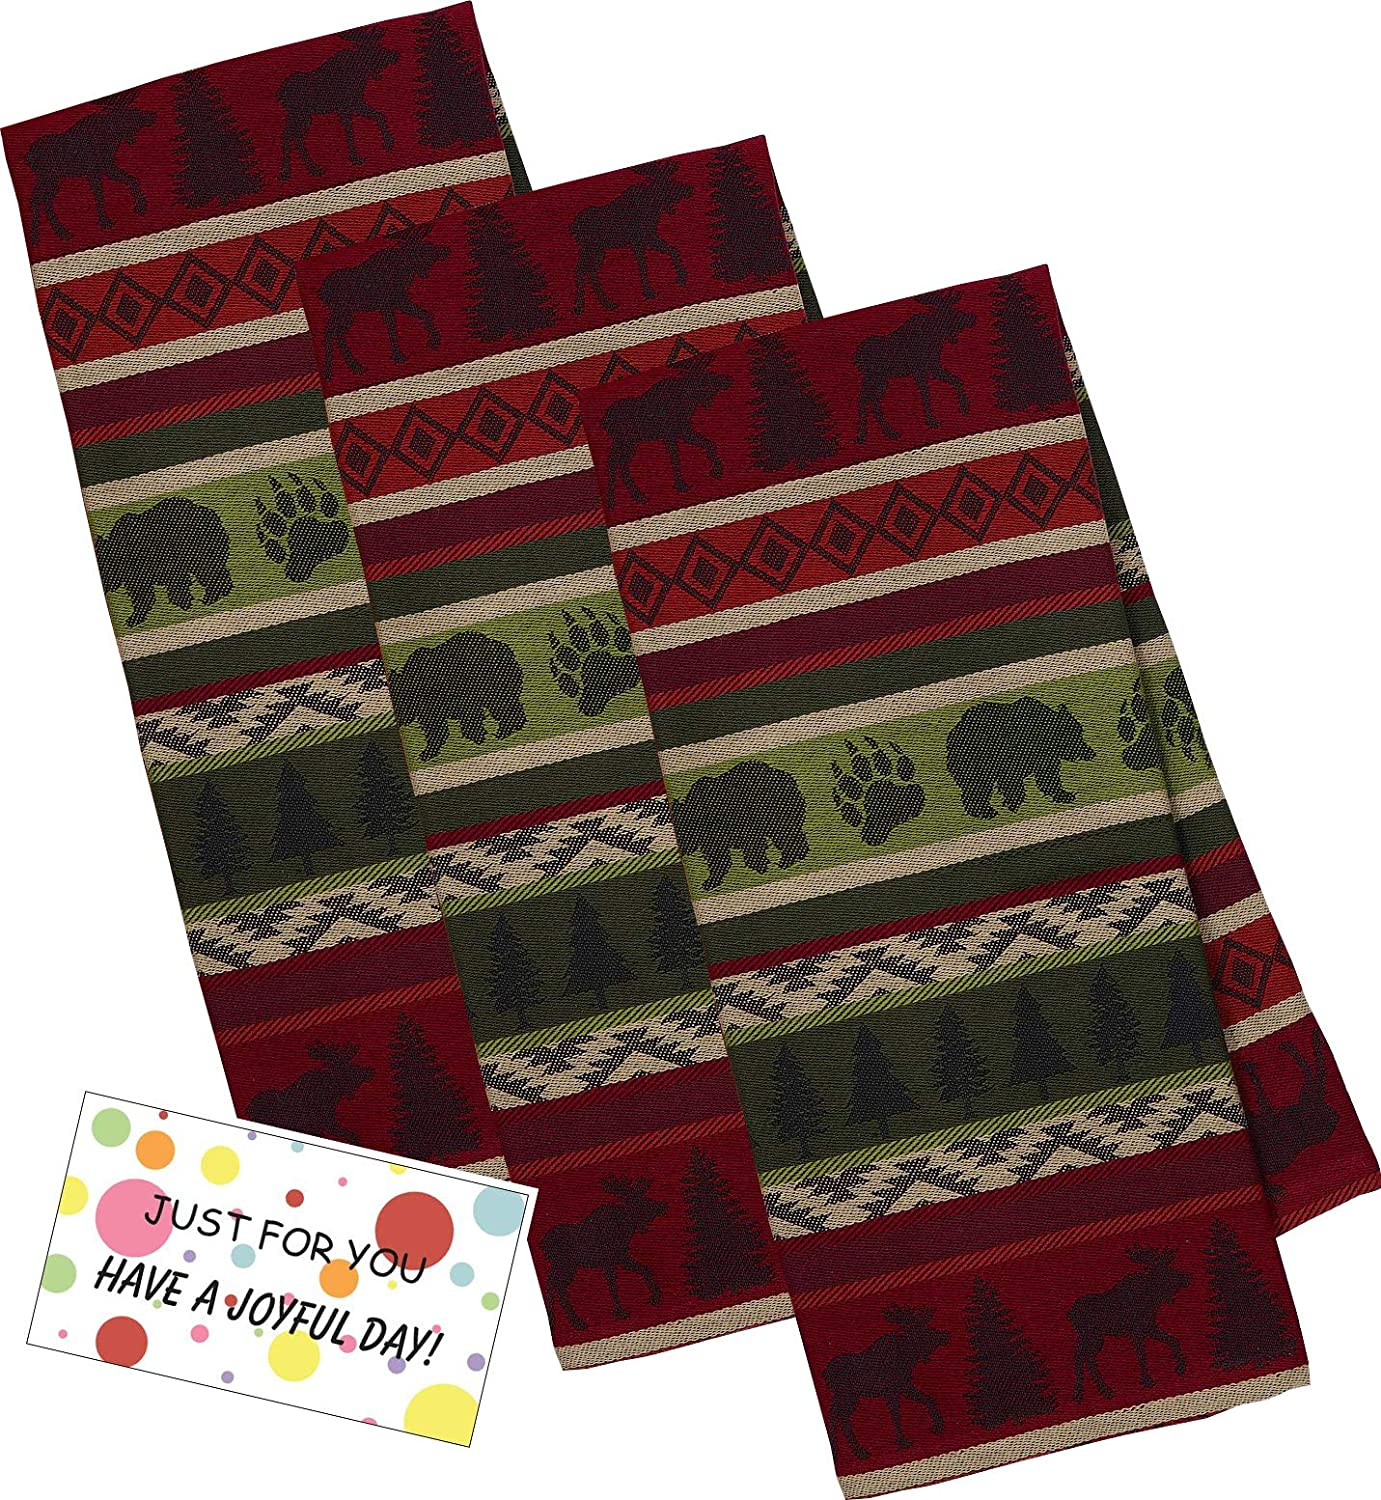 DII Design Imports Black Bear and Moose Kitchen Hand Towels Jacquard Dish Towels - Set of 3 Mountain Woods Stripe Cabin Dish Towels, Rustic Bear and Moose Decor for Camper Kitchen with Gift Tag